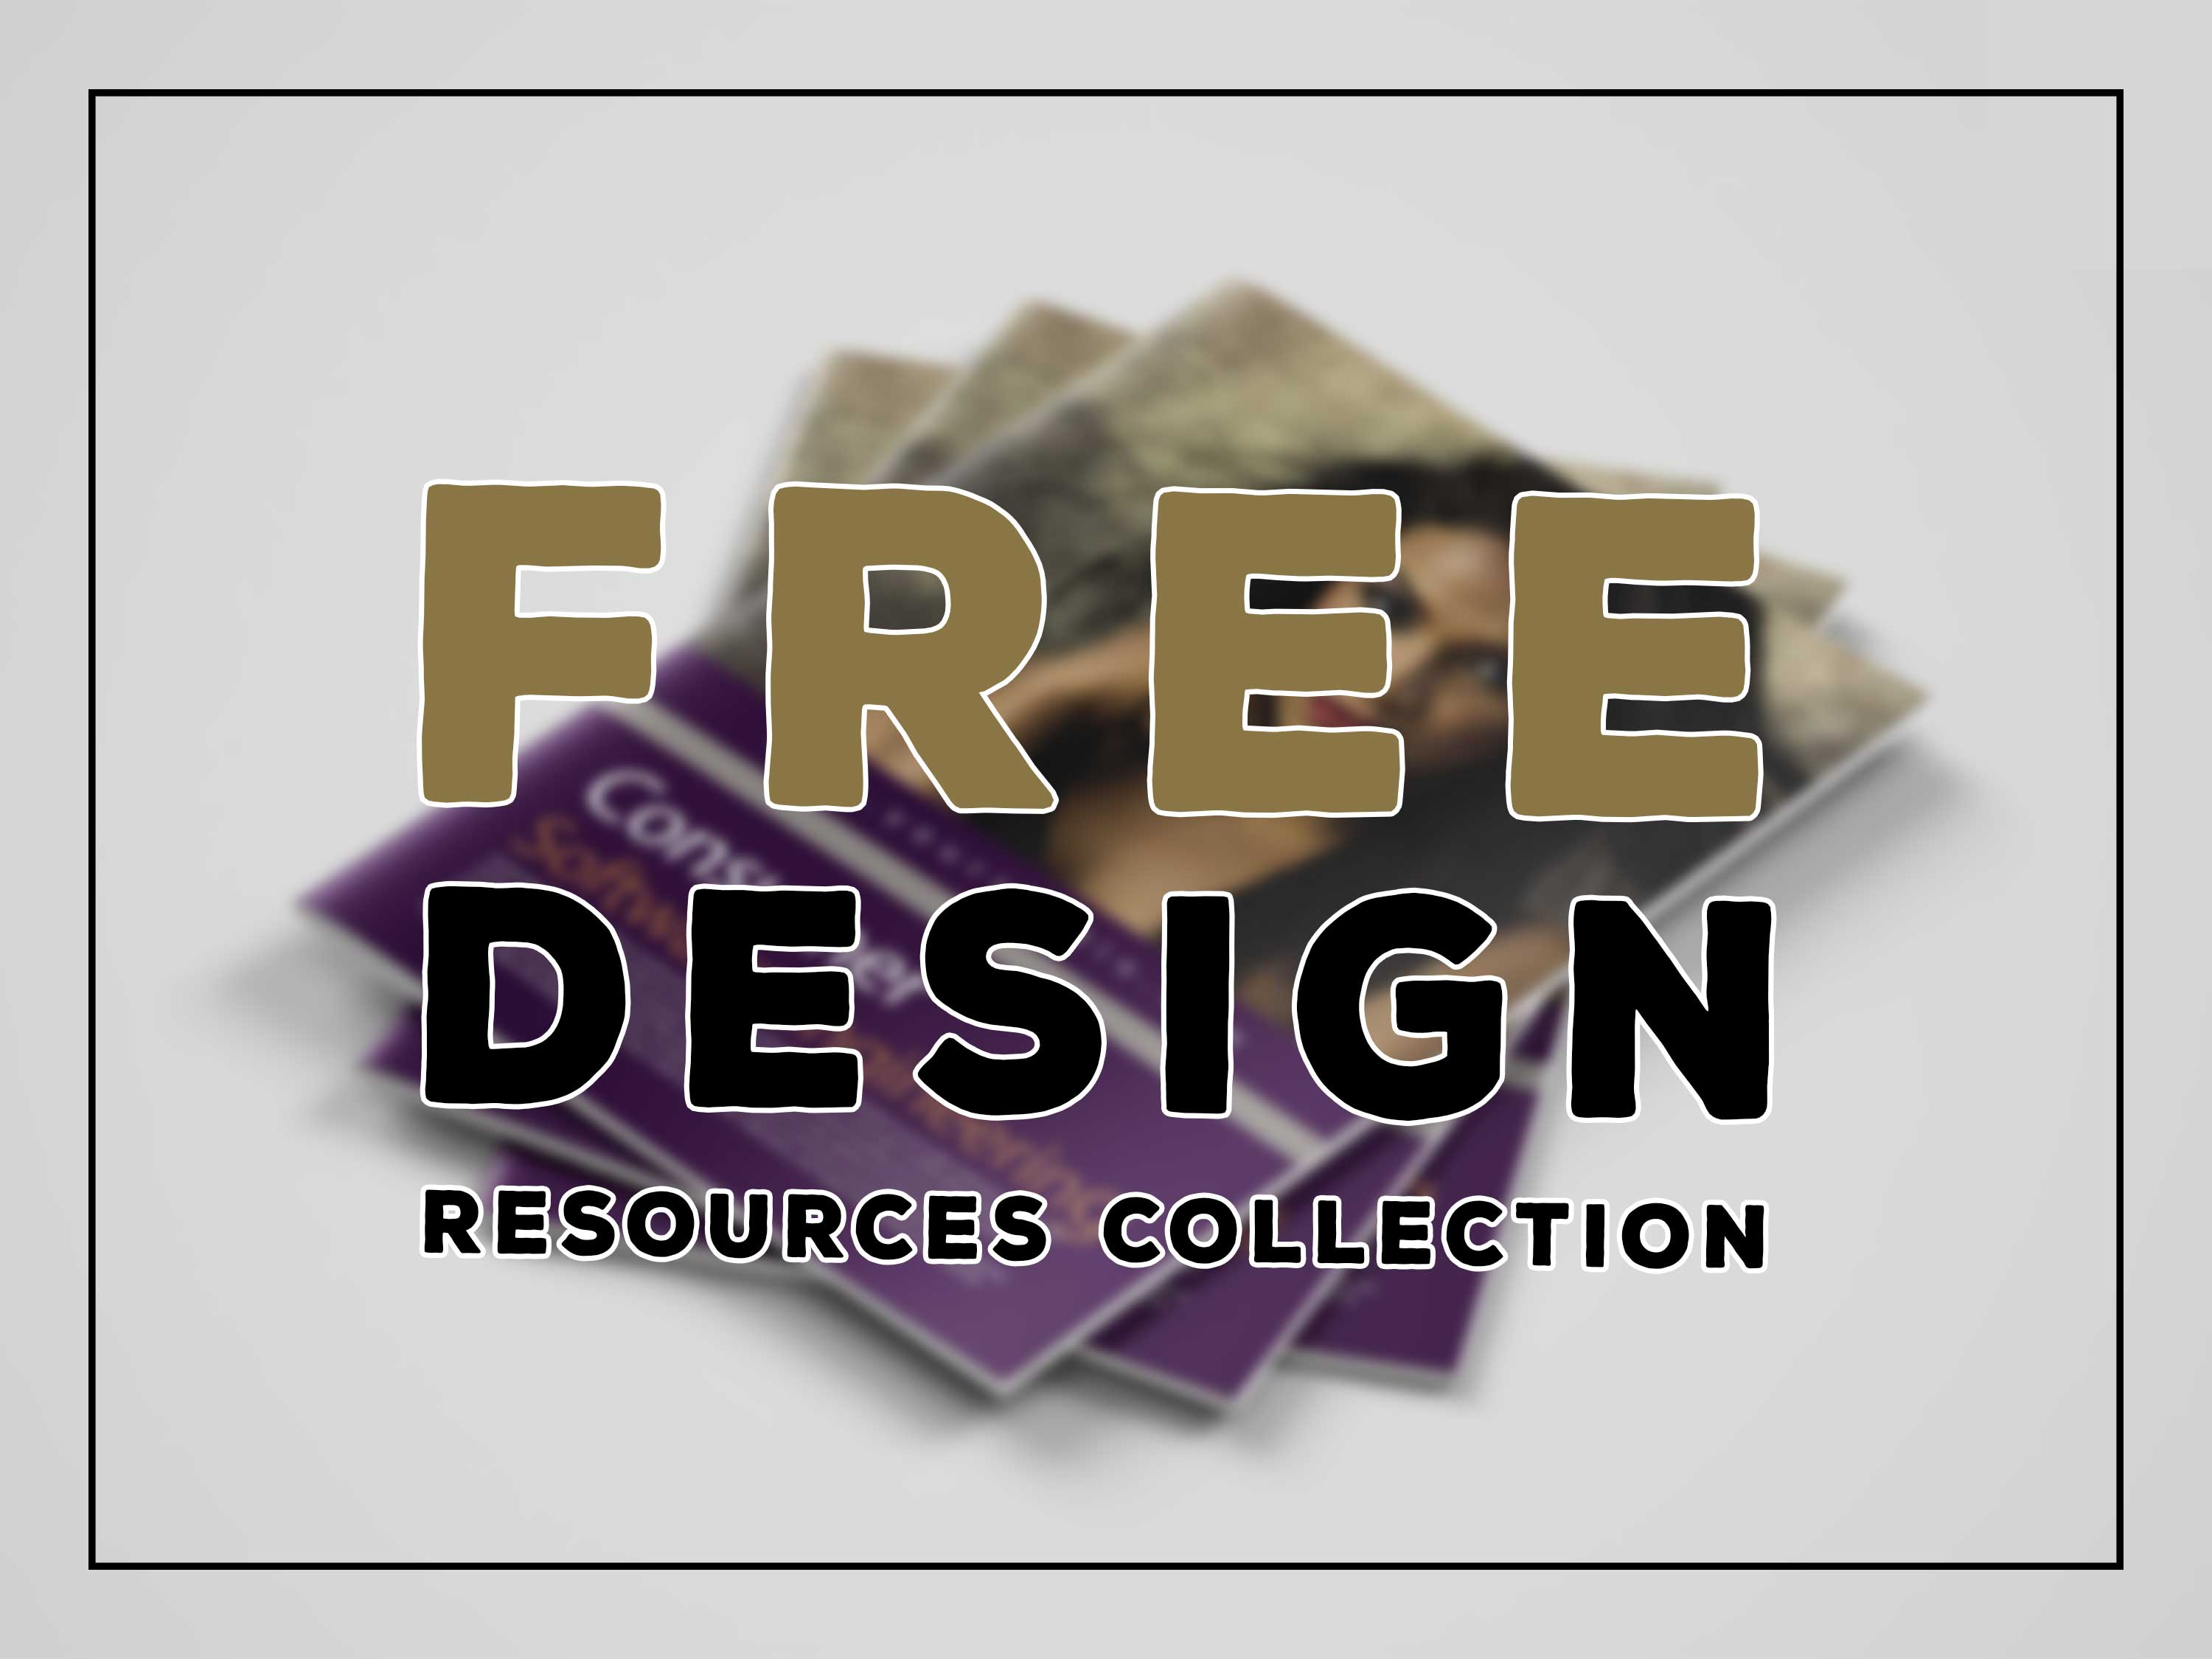 Resources Collection